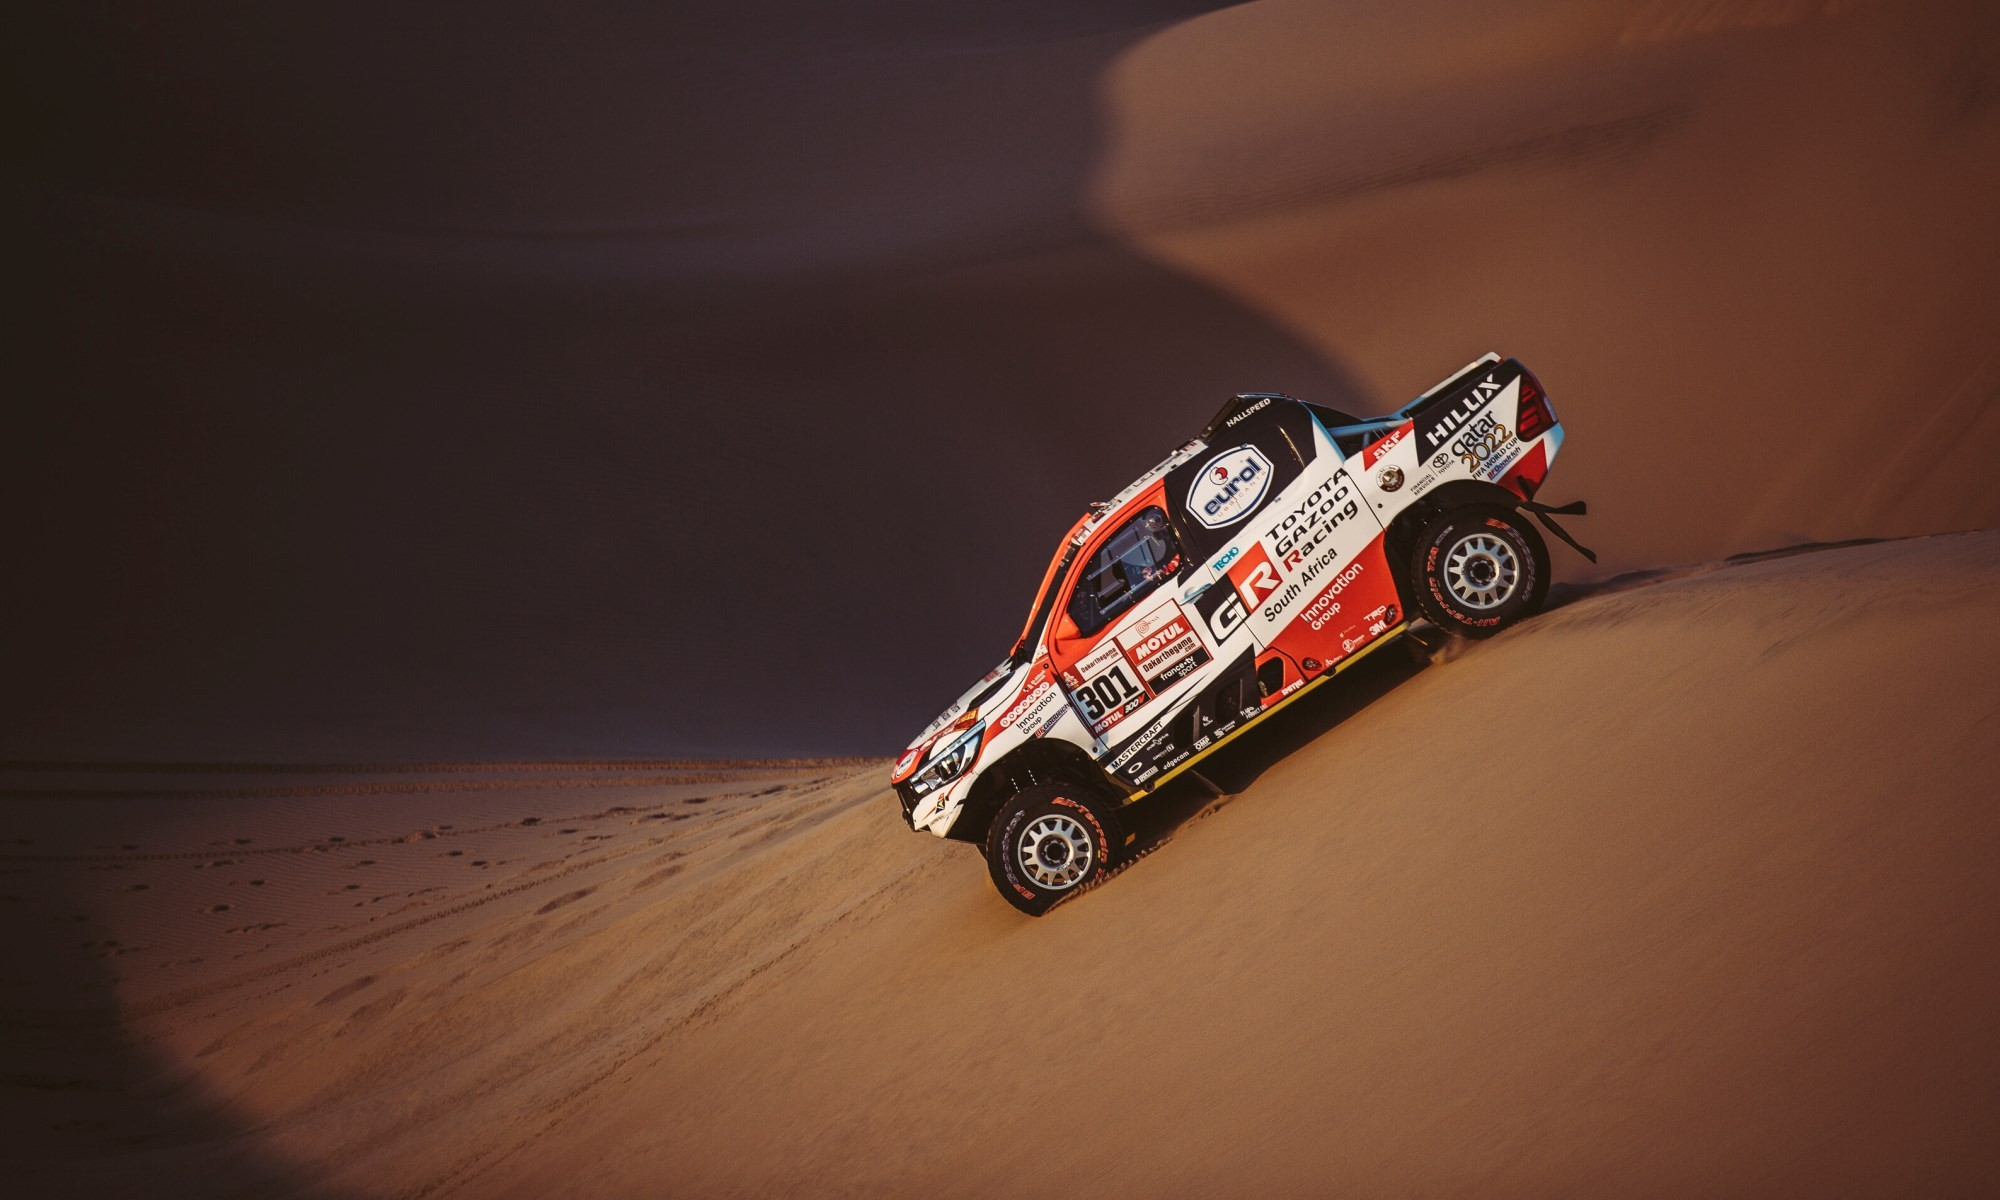 Al-Attiyah was second on stage 5